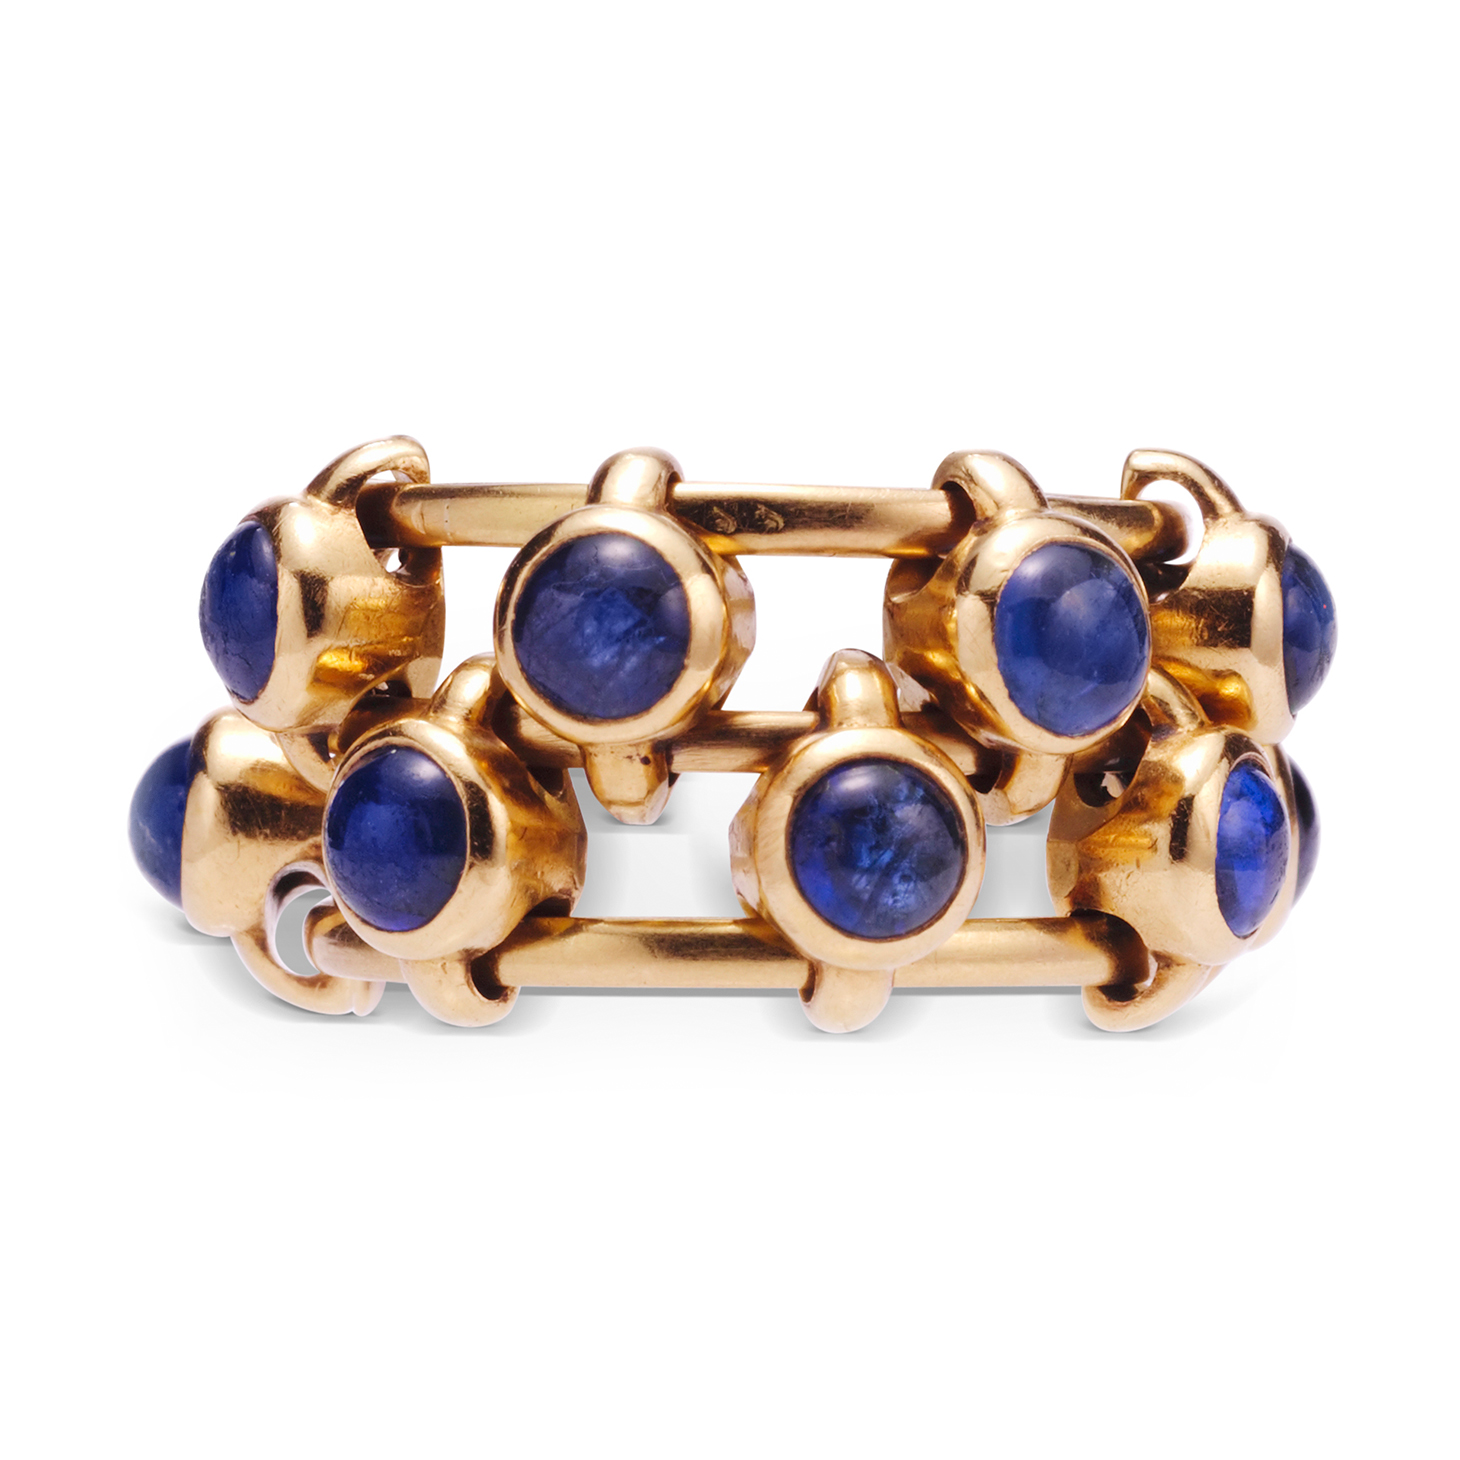 A Sapphire and Gold 'Abacus' Ring, by JAR